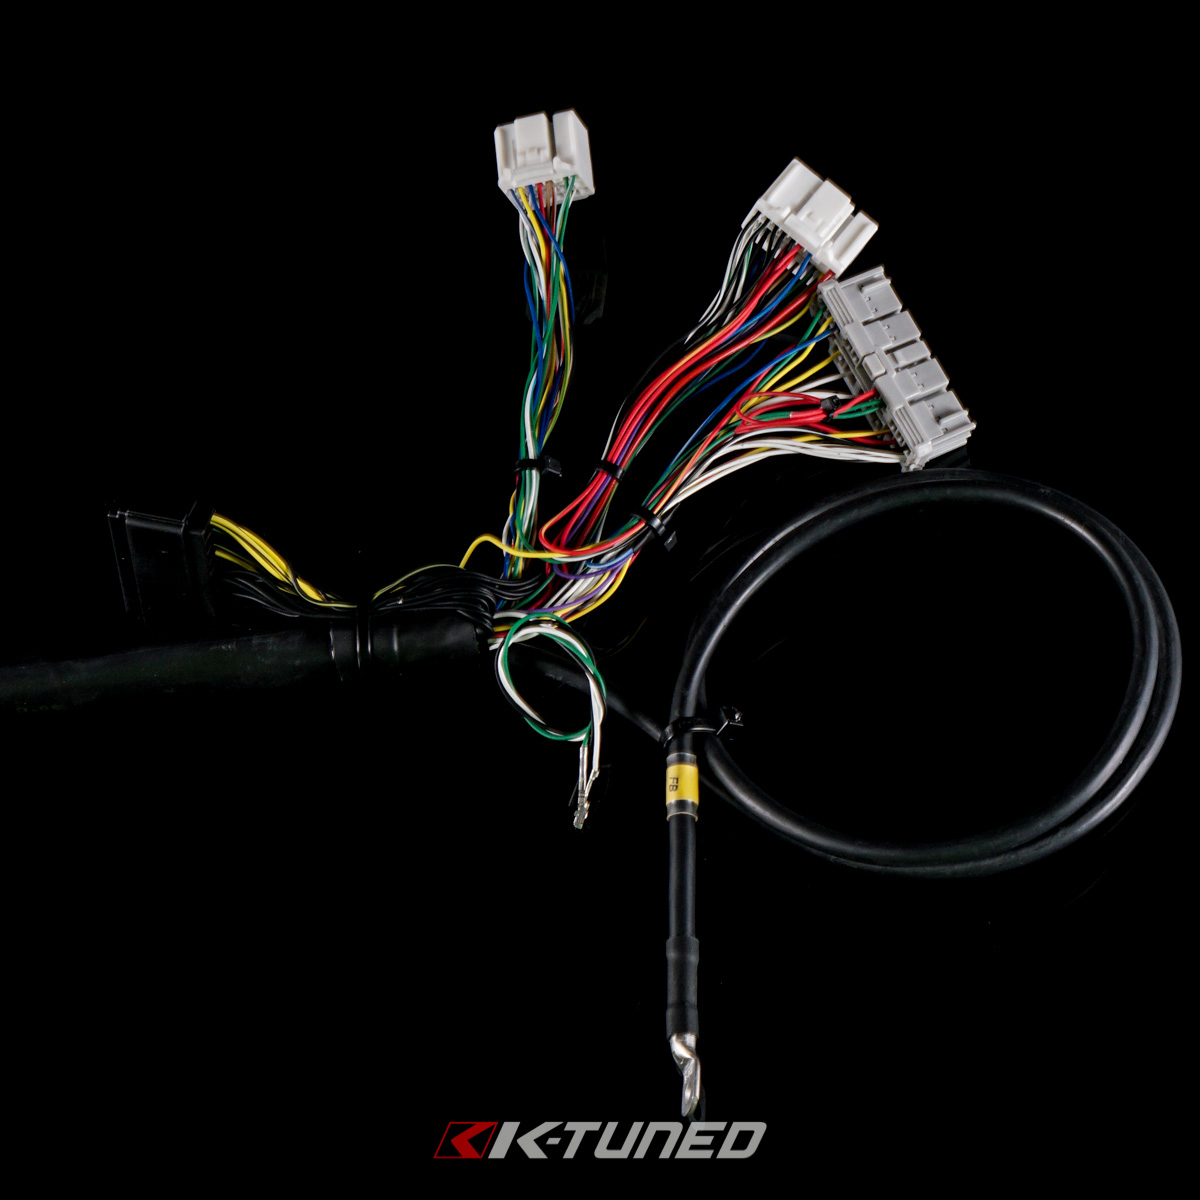 k series tucked engine harness 2010 Mustang GT Fuse Box